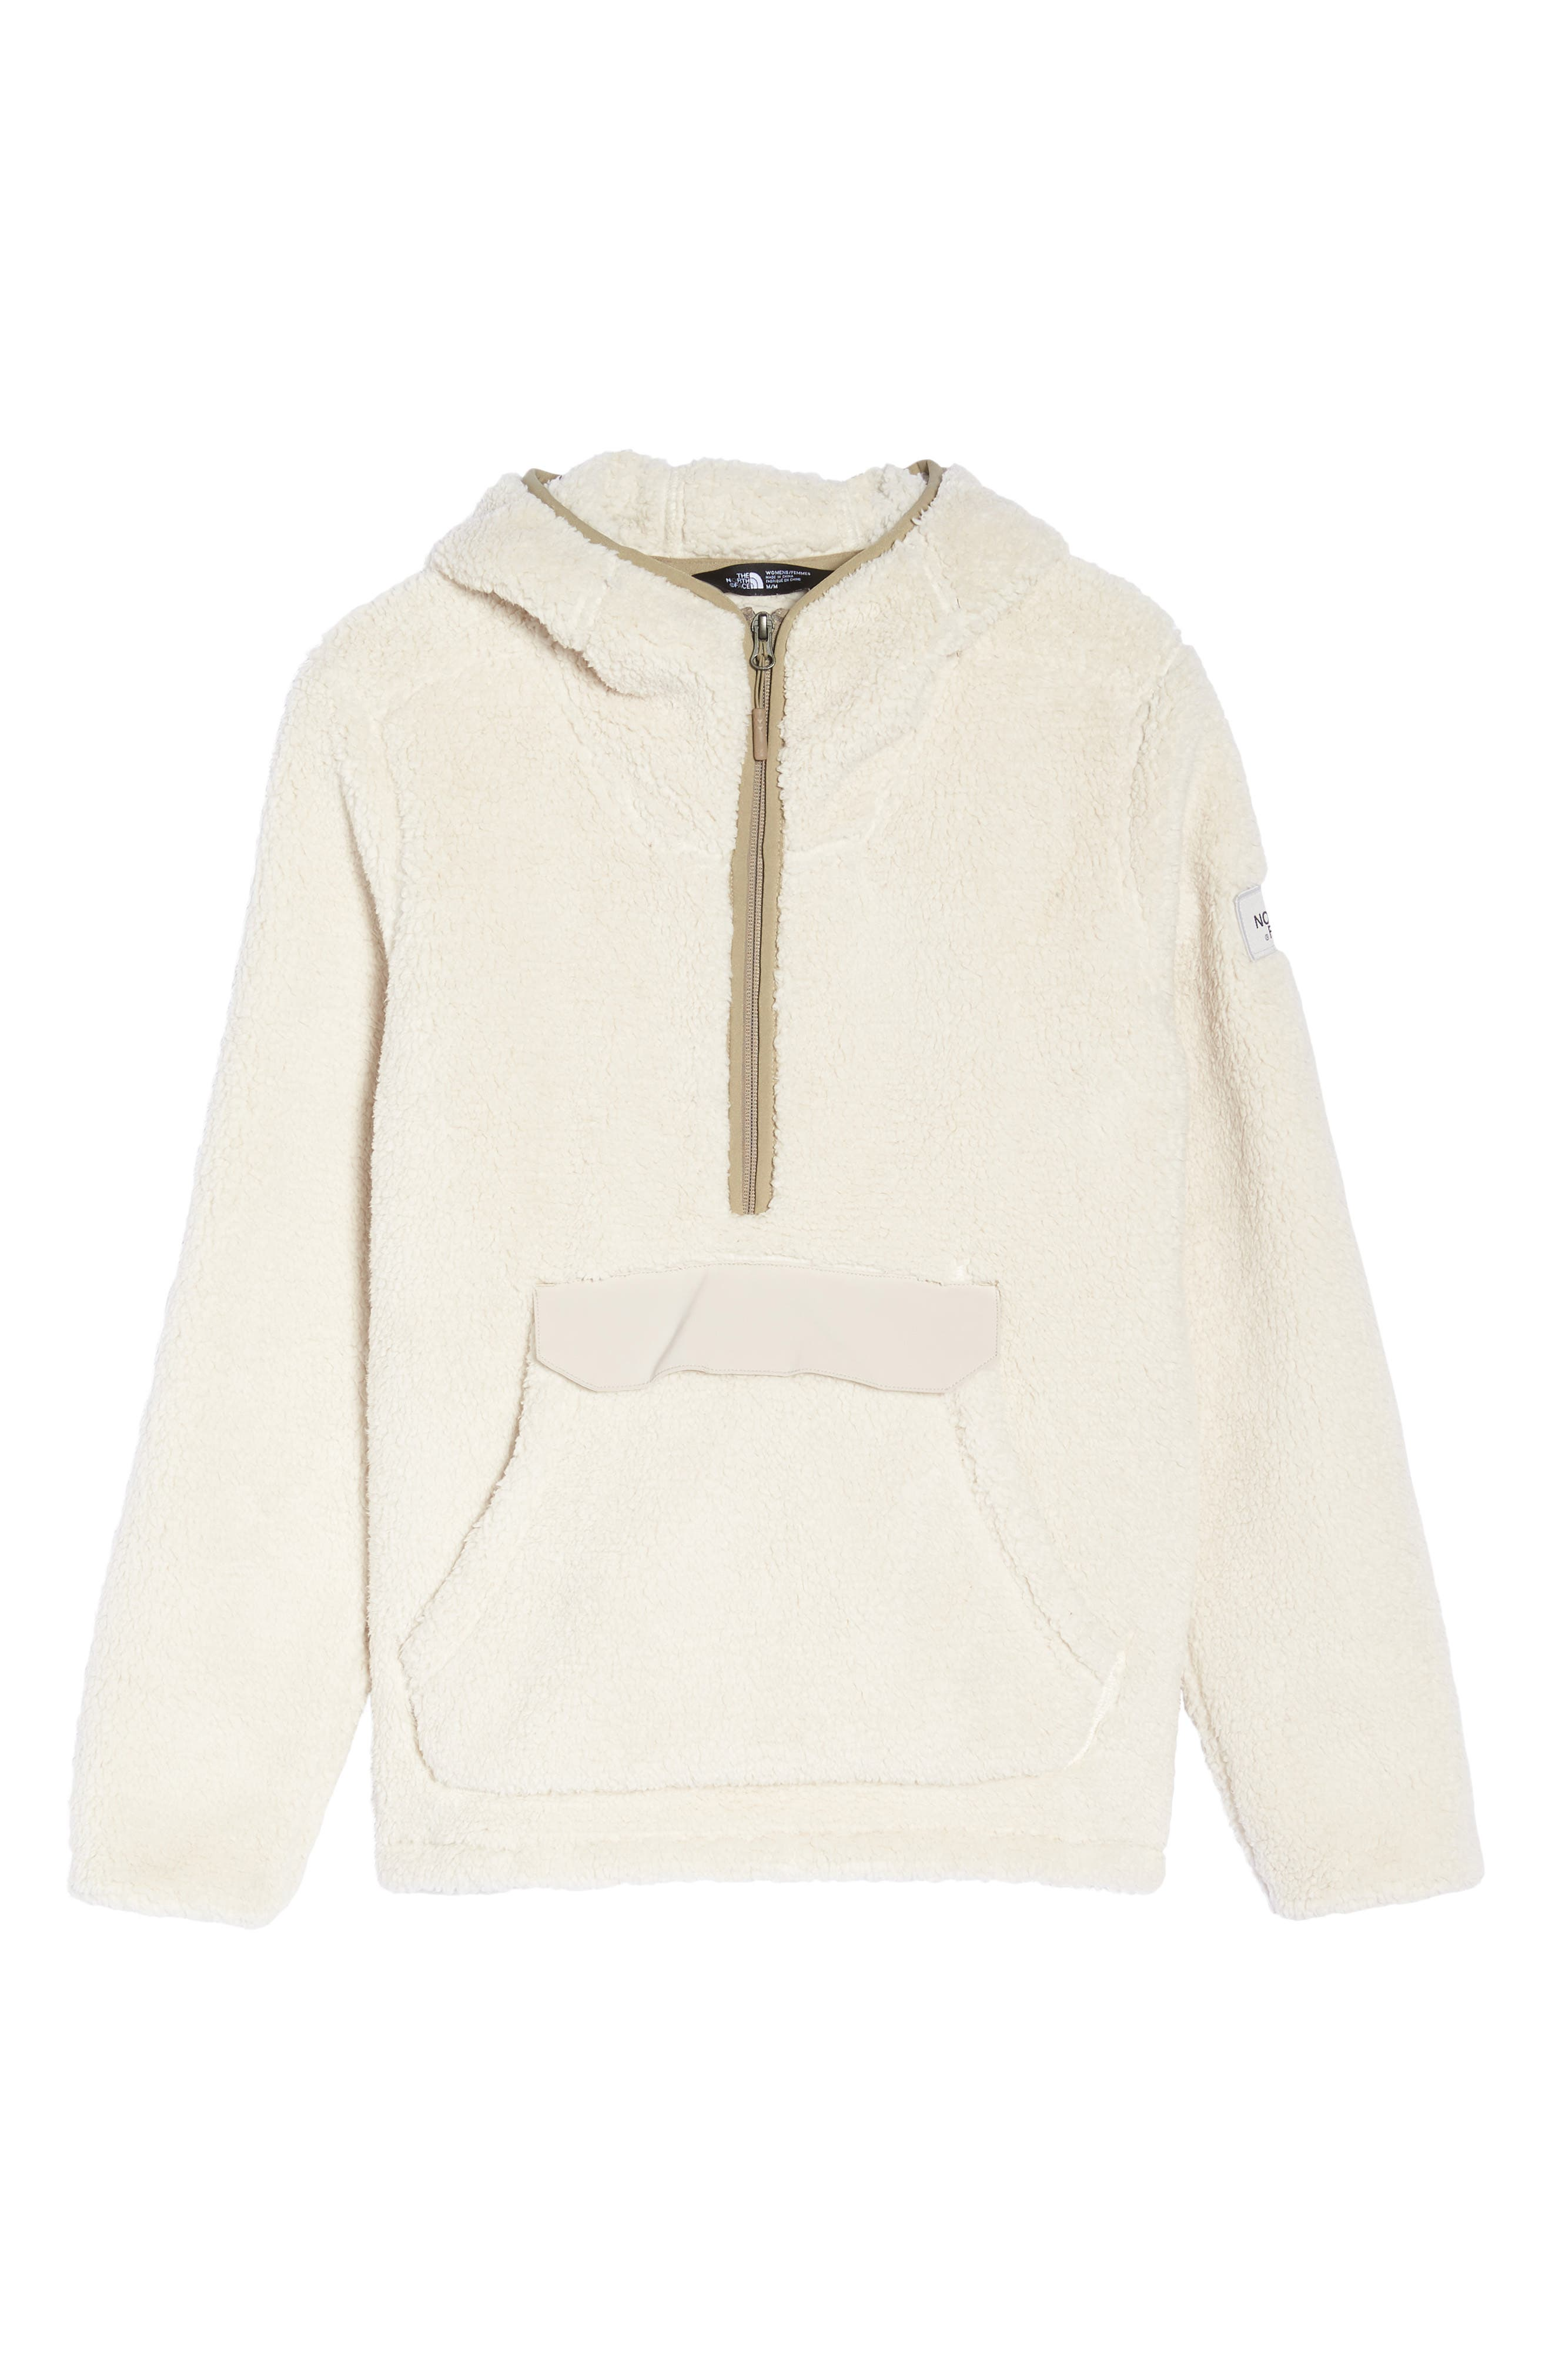 Campshire High Pile Fleece Pullover Hoodie,                             Alternate thumbnail 7, color,                             Vintage White/ Peyote Beige